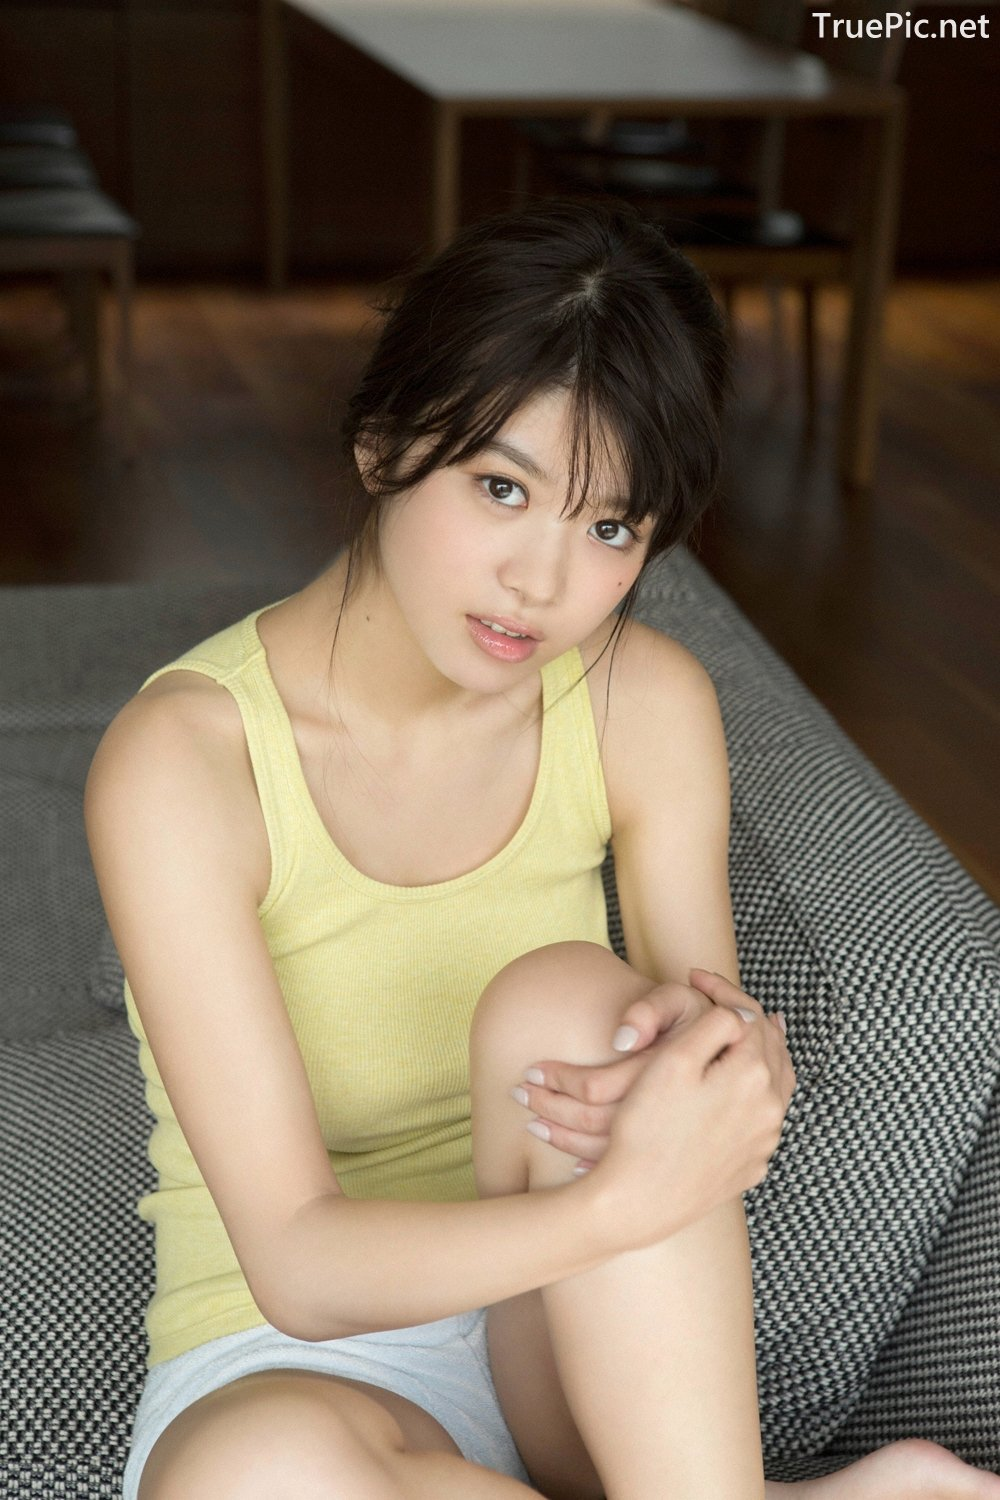 Japanese Actress And Model - Fumika Baba - YS Web Vol.729 - TruePic.net - Picture-9